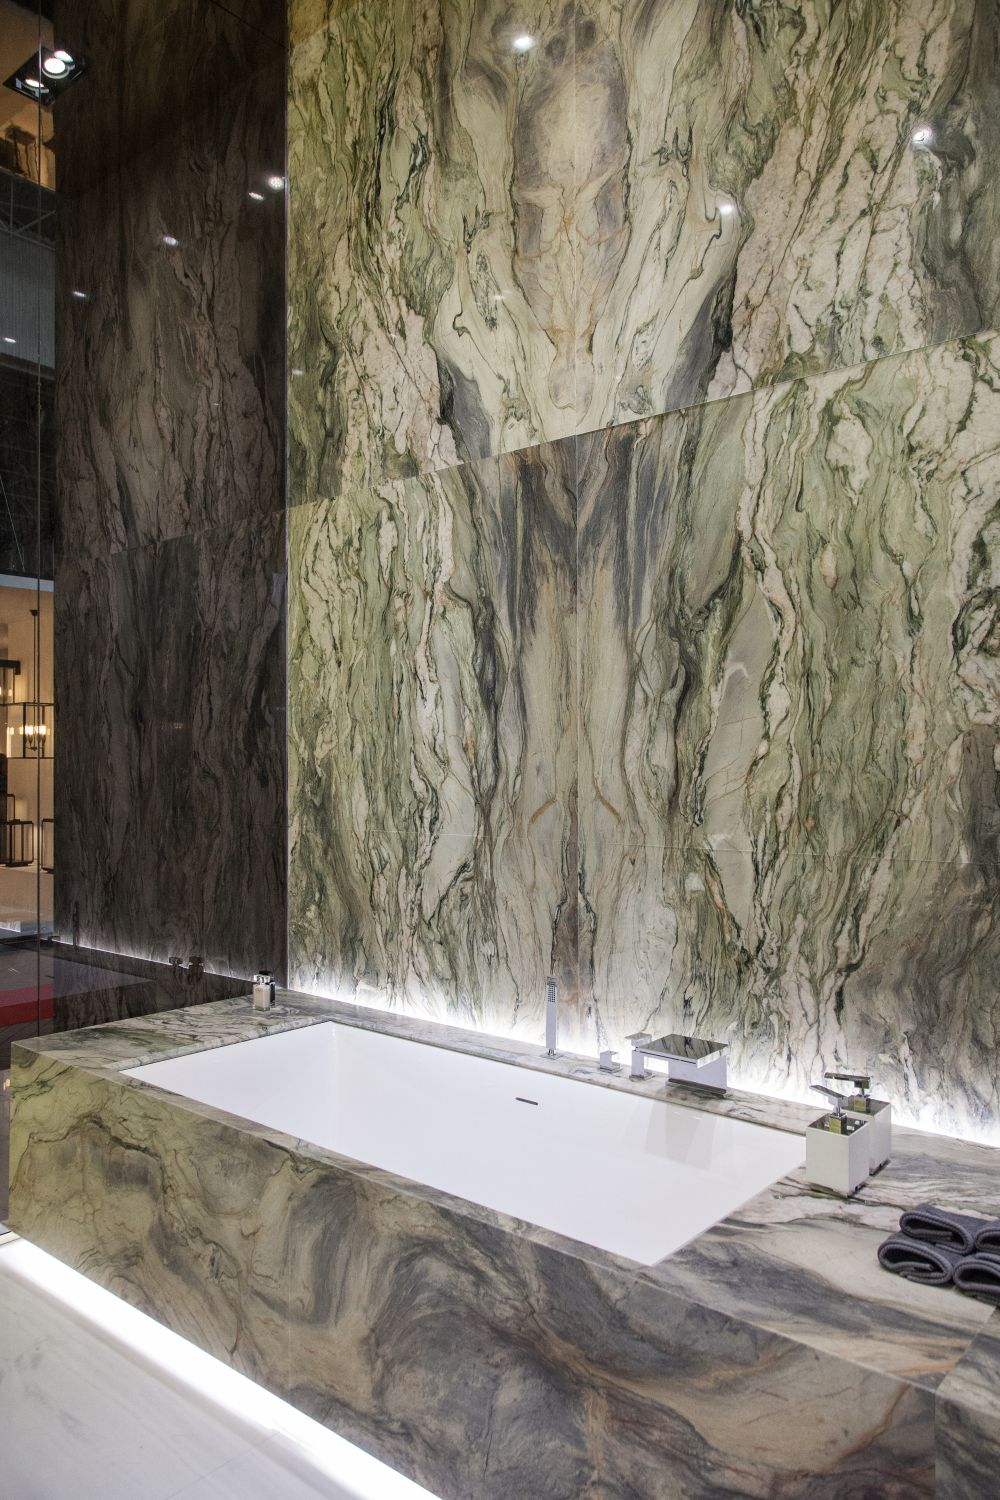 The design plays with the unique and distinct patterns on each block of marble and the result is very artistic